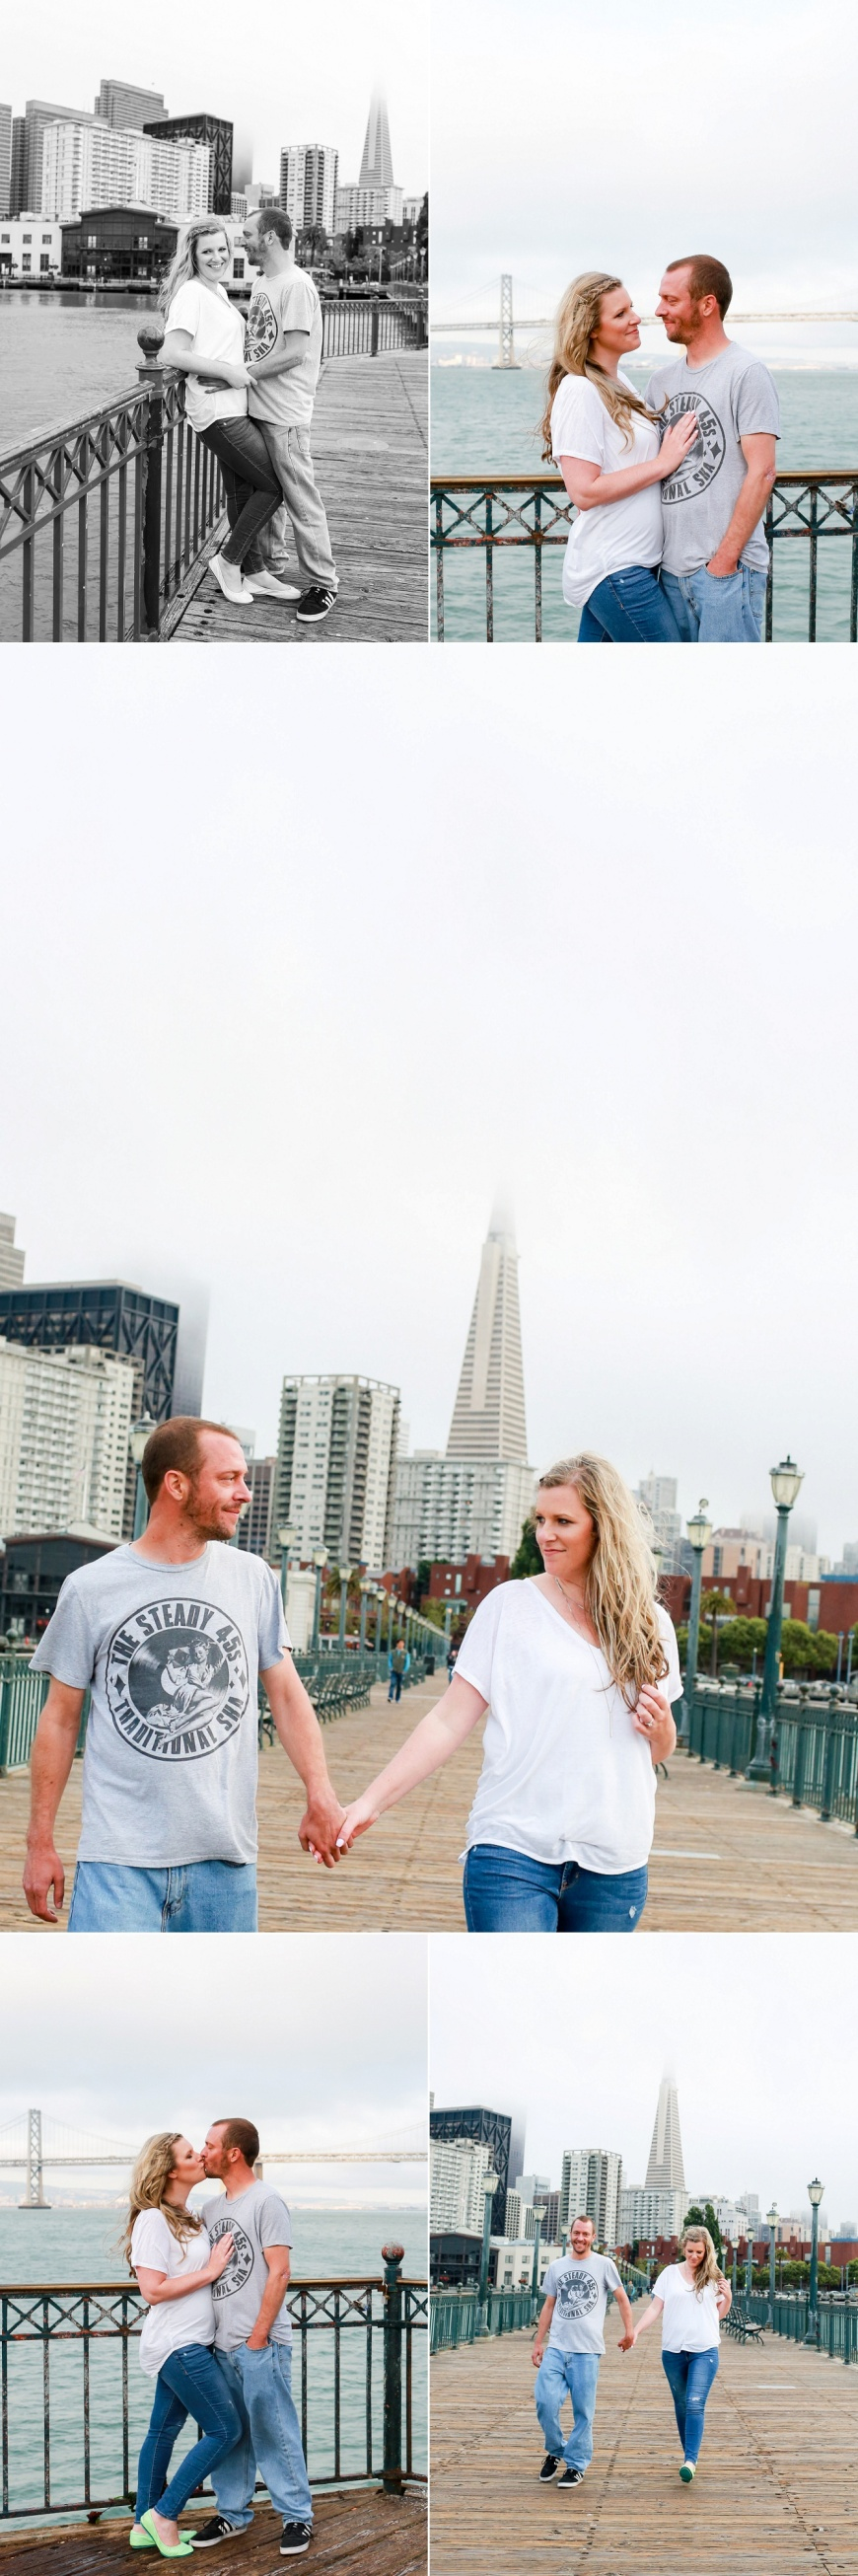 Urban-SF-San-Francisco-Engagement_1030.jpg